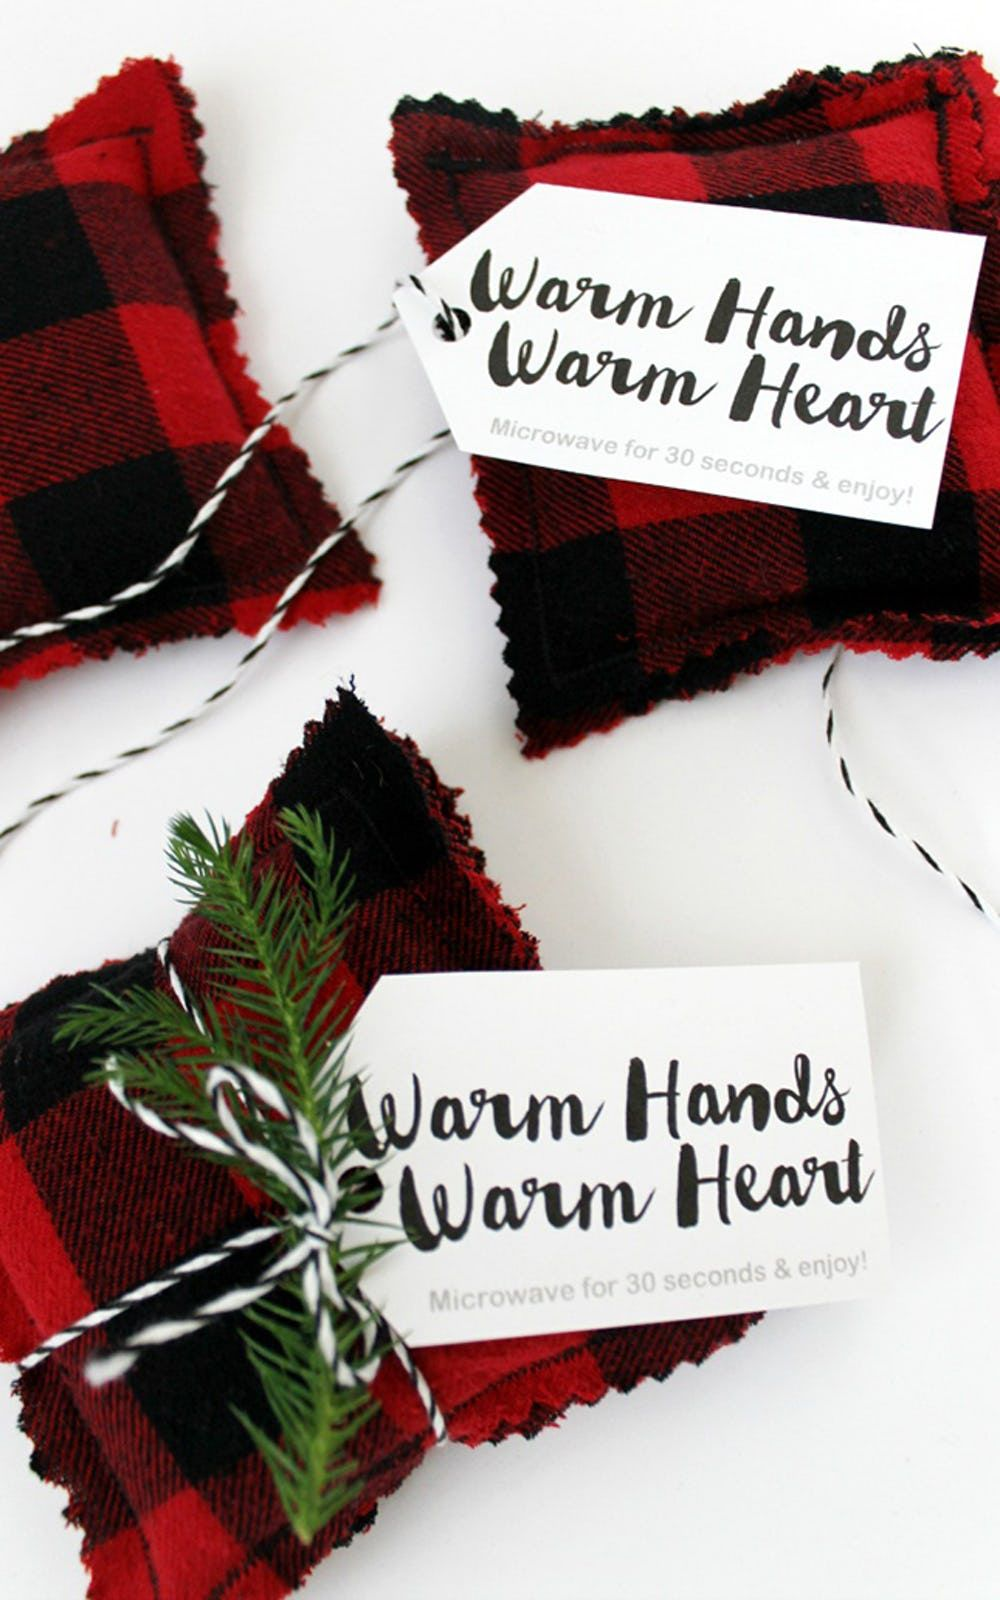 29 DIY Winter Wedding Favors for Guests to Cozy Up To - Diy winter wedding, Homemade christmas gifts, Winter wedding favors, Winter wedding favors diy, Winter diy, Christmas diy - When guests are done cozying up, let them take home some of your wedding magic with these DIY favors